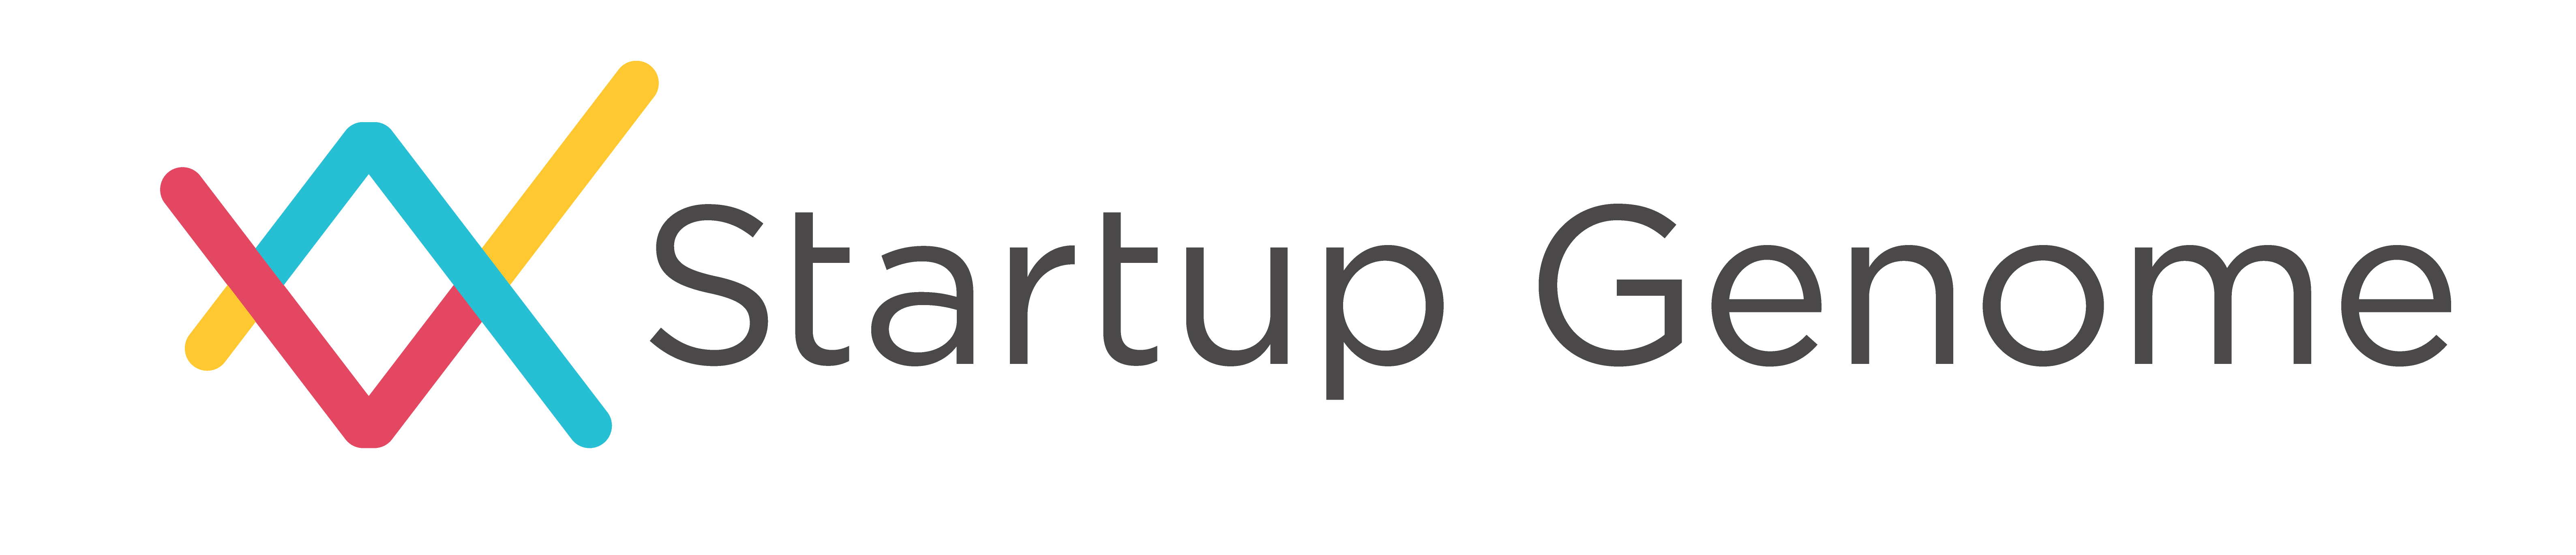 Startup Genome, Intesa Sanpaolo Innovation Center and Compagnia Di San Paolo Foundation Join Forces to Grow Turin's Startup Ecosystem